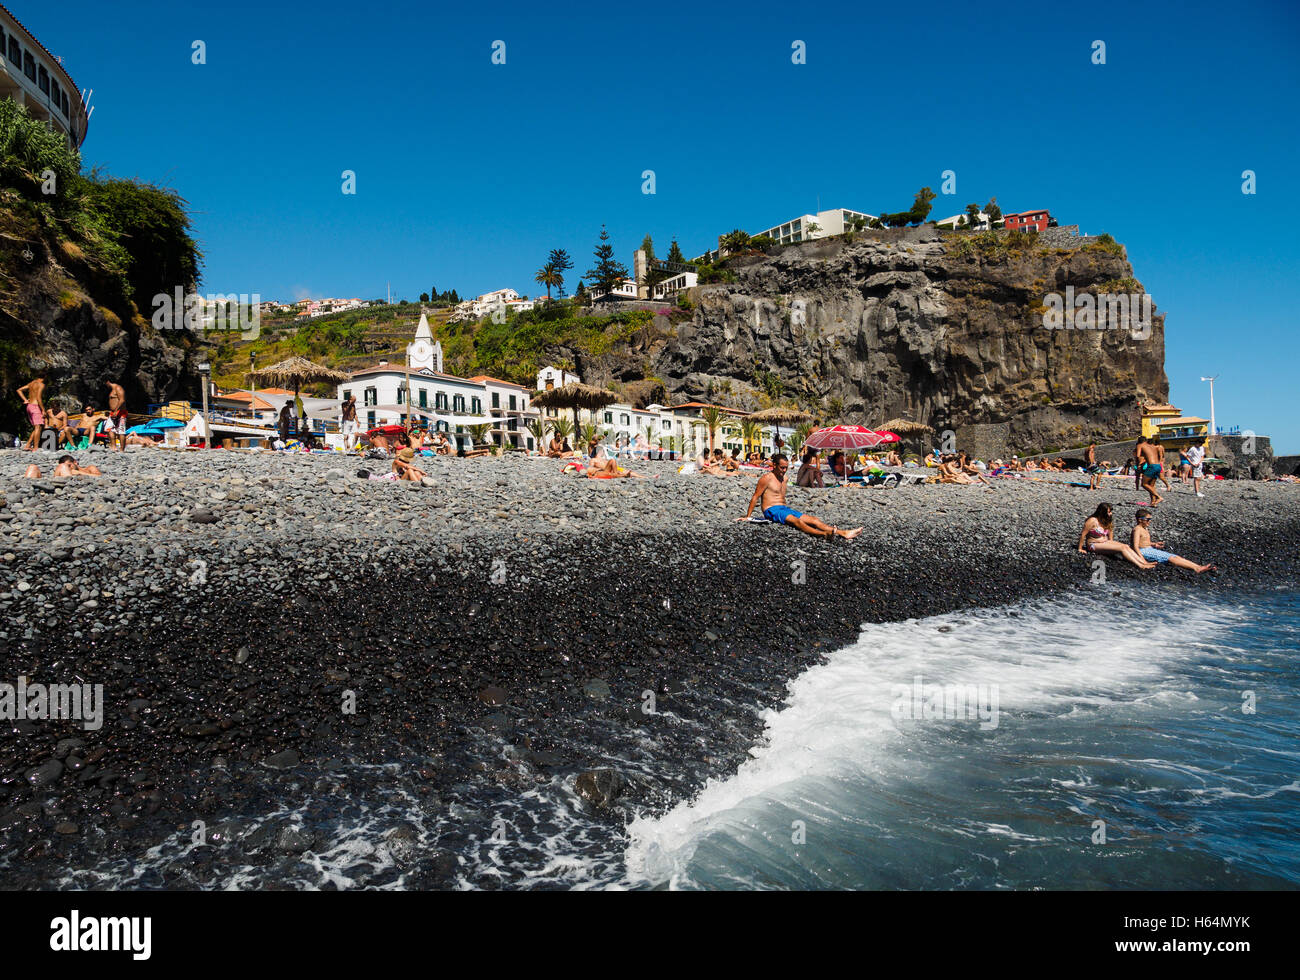 The beach of Ponta do Sol with the Enotel hotel on the Portuguese island of Madeira - Stock Image